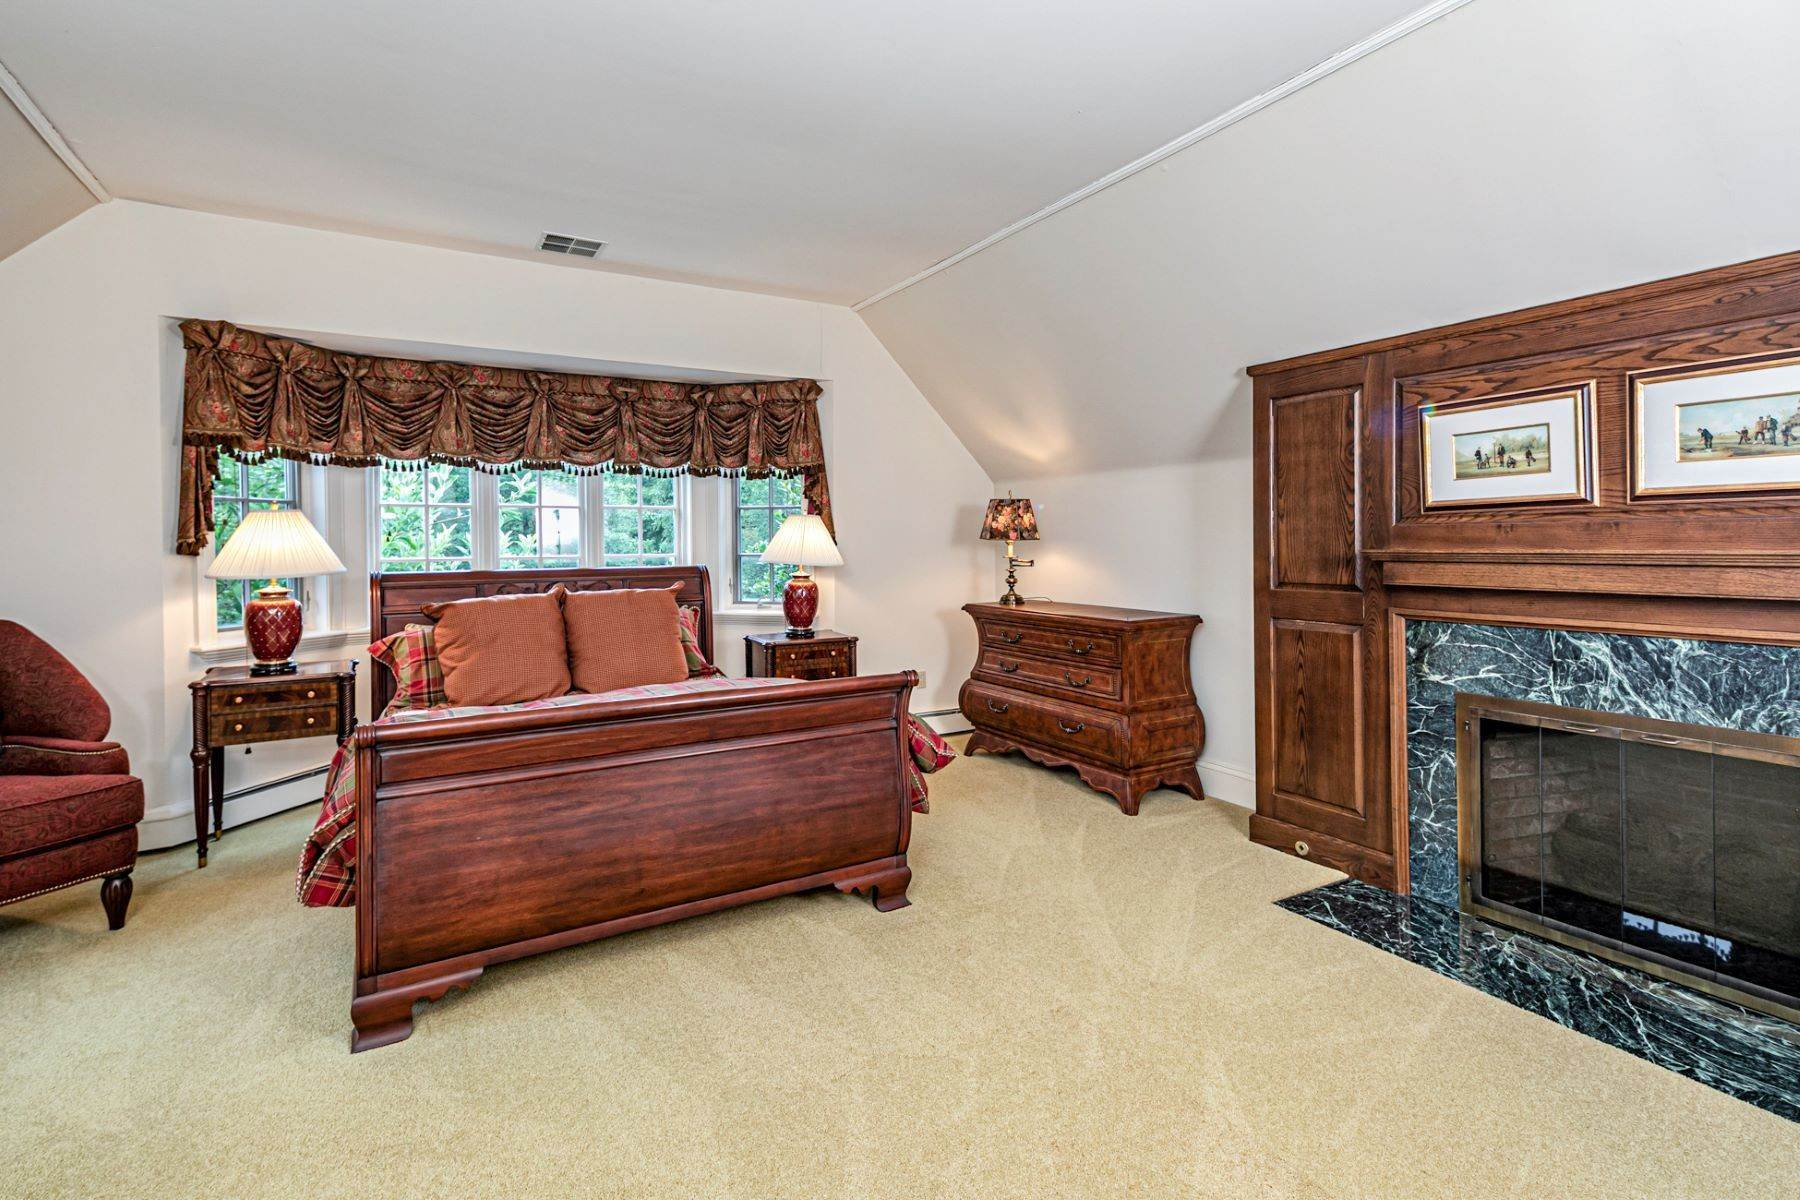 21. Single Family Homes for Sale at Private Compound with Every Amenity Imaginable 82 Aunt Molly Road, Hopewell, New Jersey 08525 United States